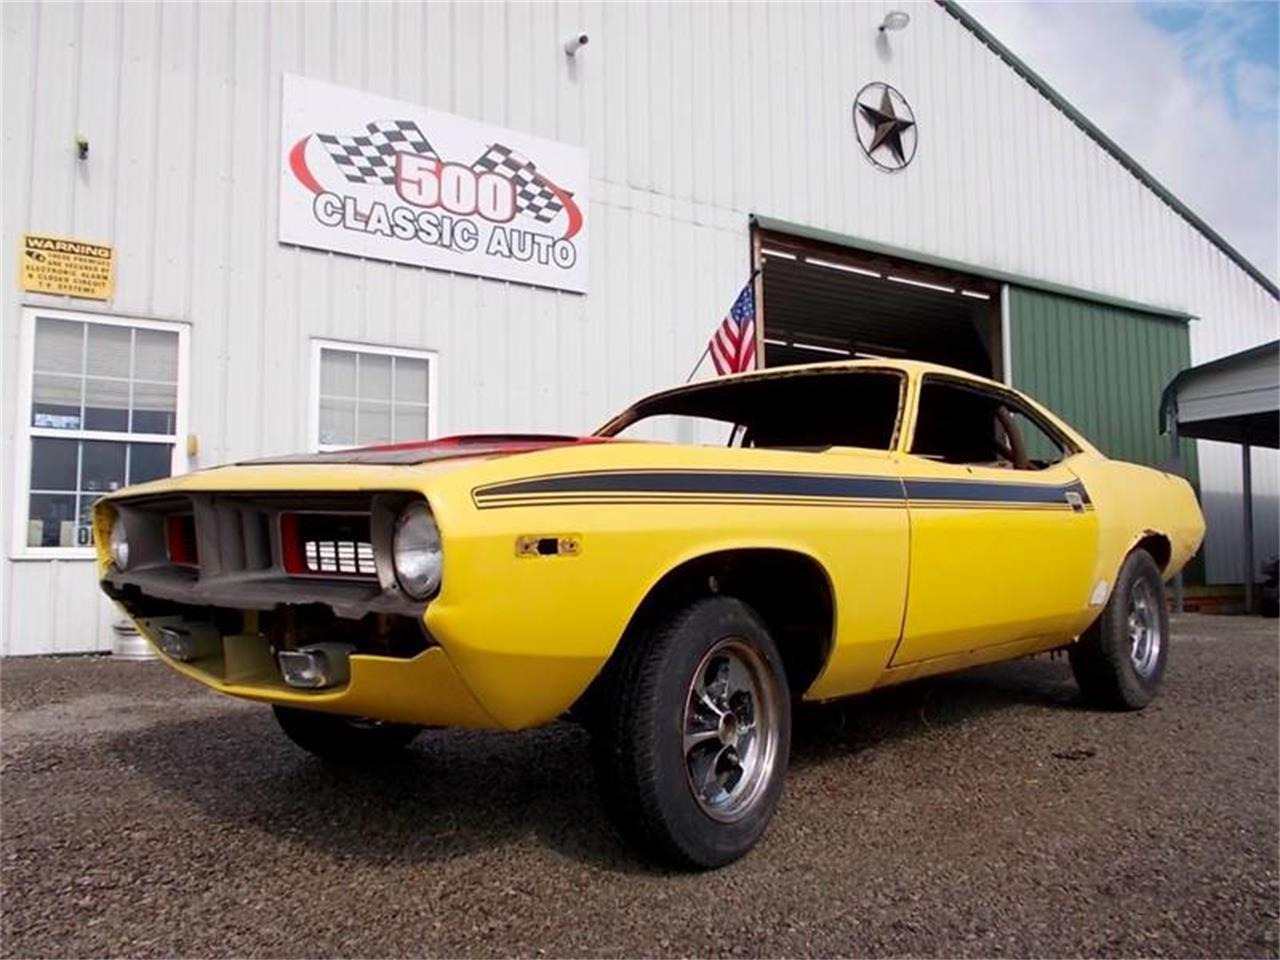 Large Picture of Classic '73 Barracuda - $5,500.00 Offered by 500 Classic Auto Sales - OW6X